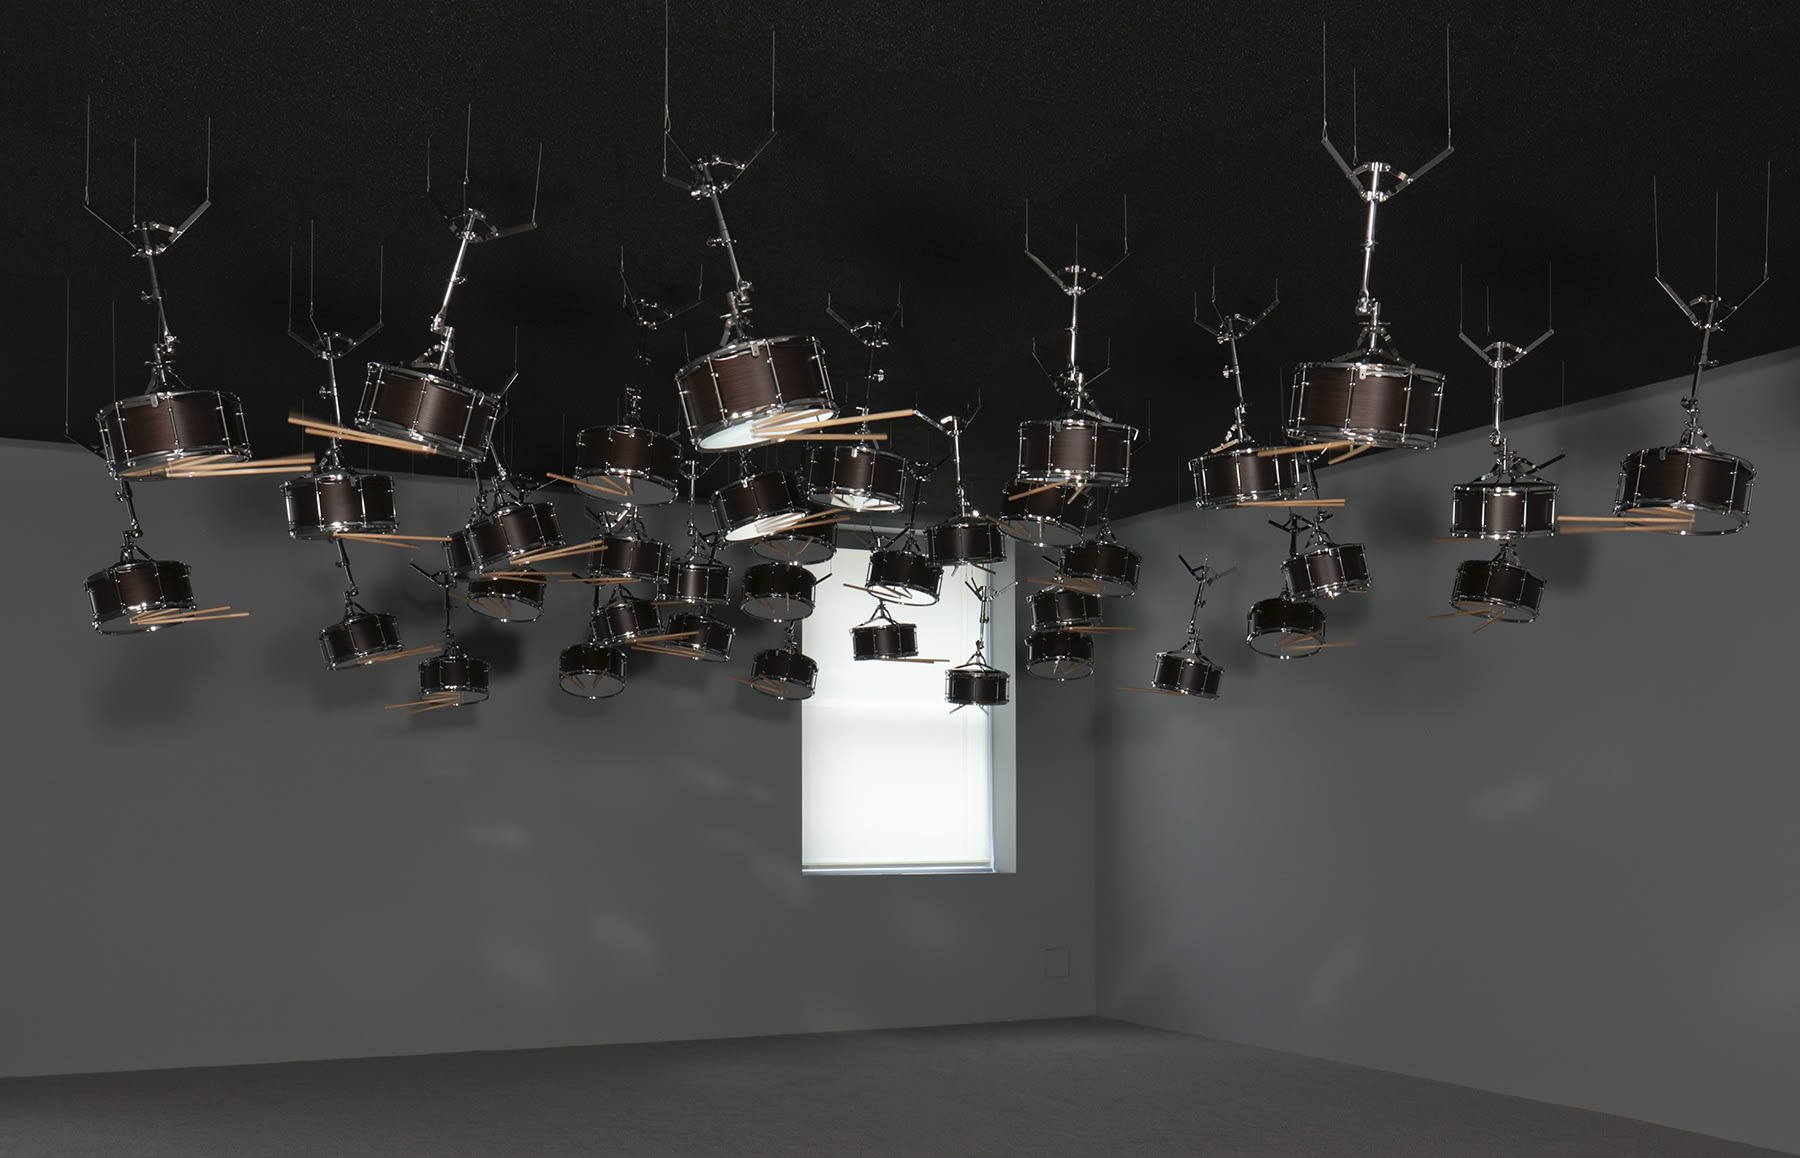 Snare drums suspended upside down from the ceiling in a grey room.